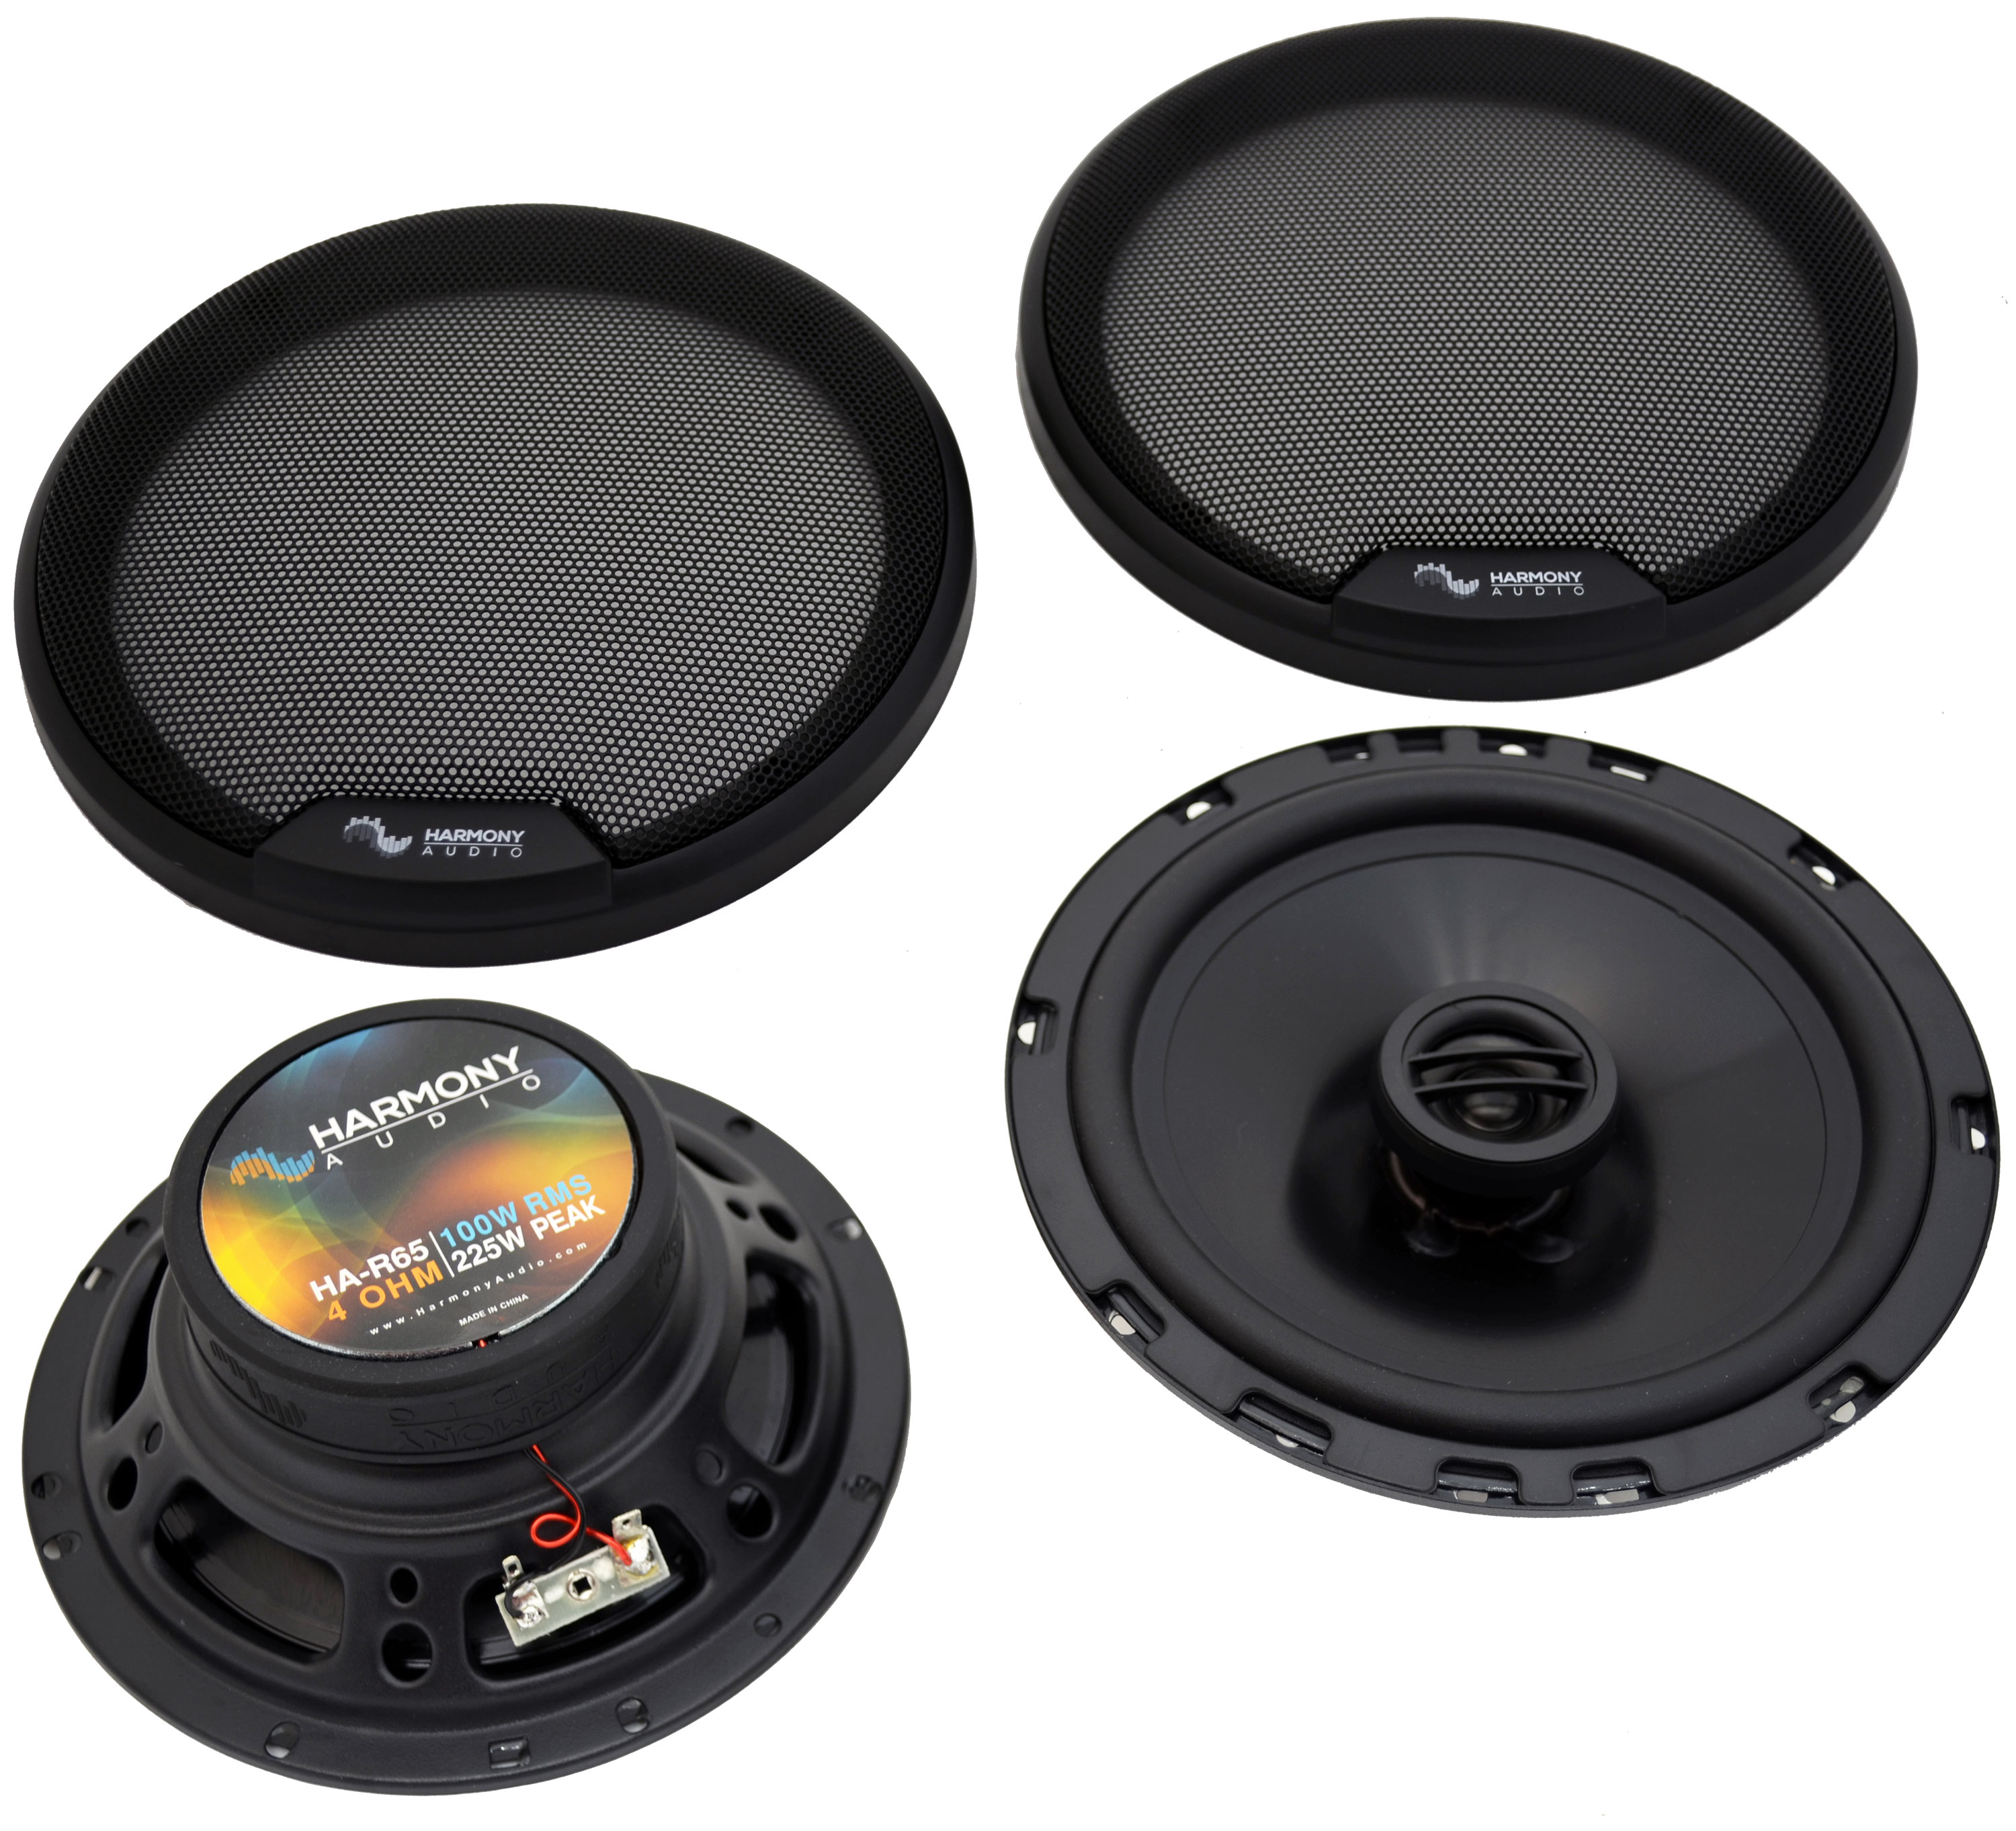 Fits BMW 1 Series 2008-2013 Rear Deck Replacement Harmony HA-R65 Speakers New